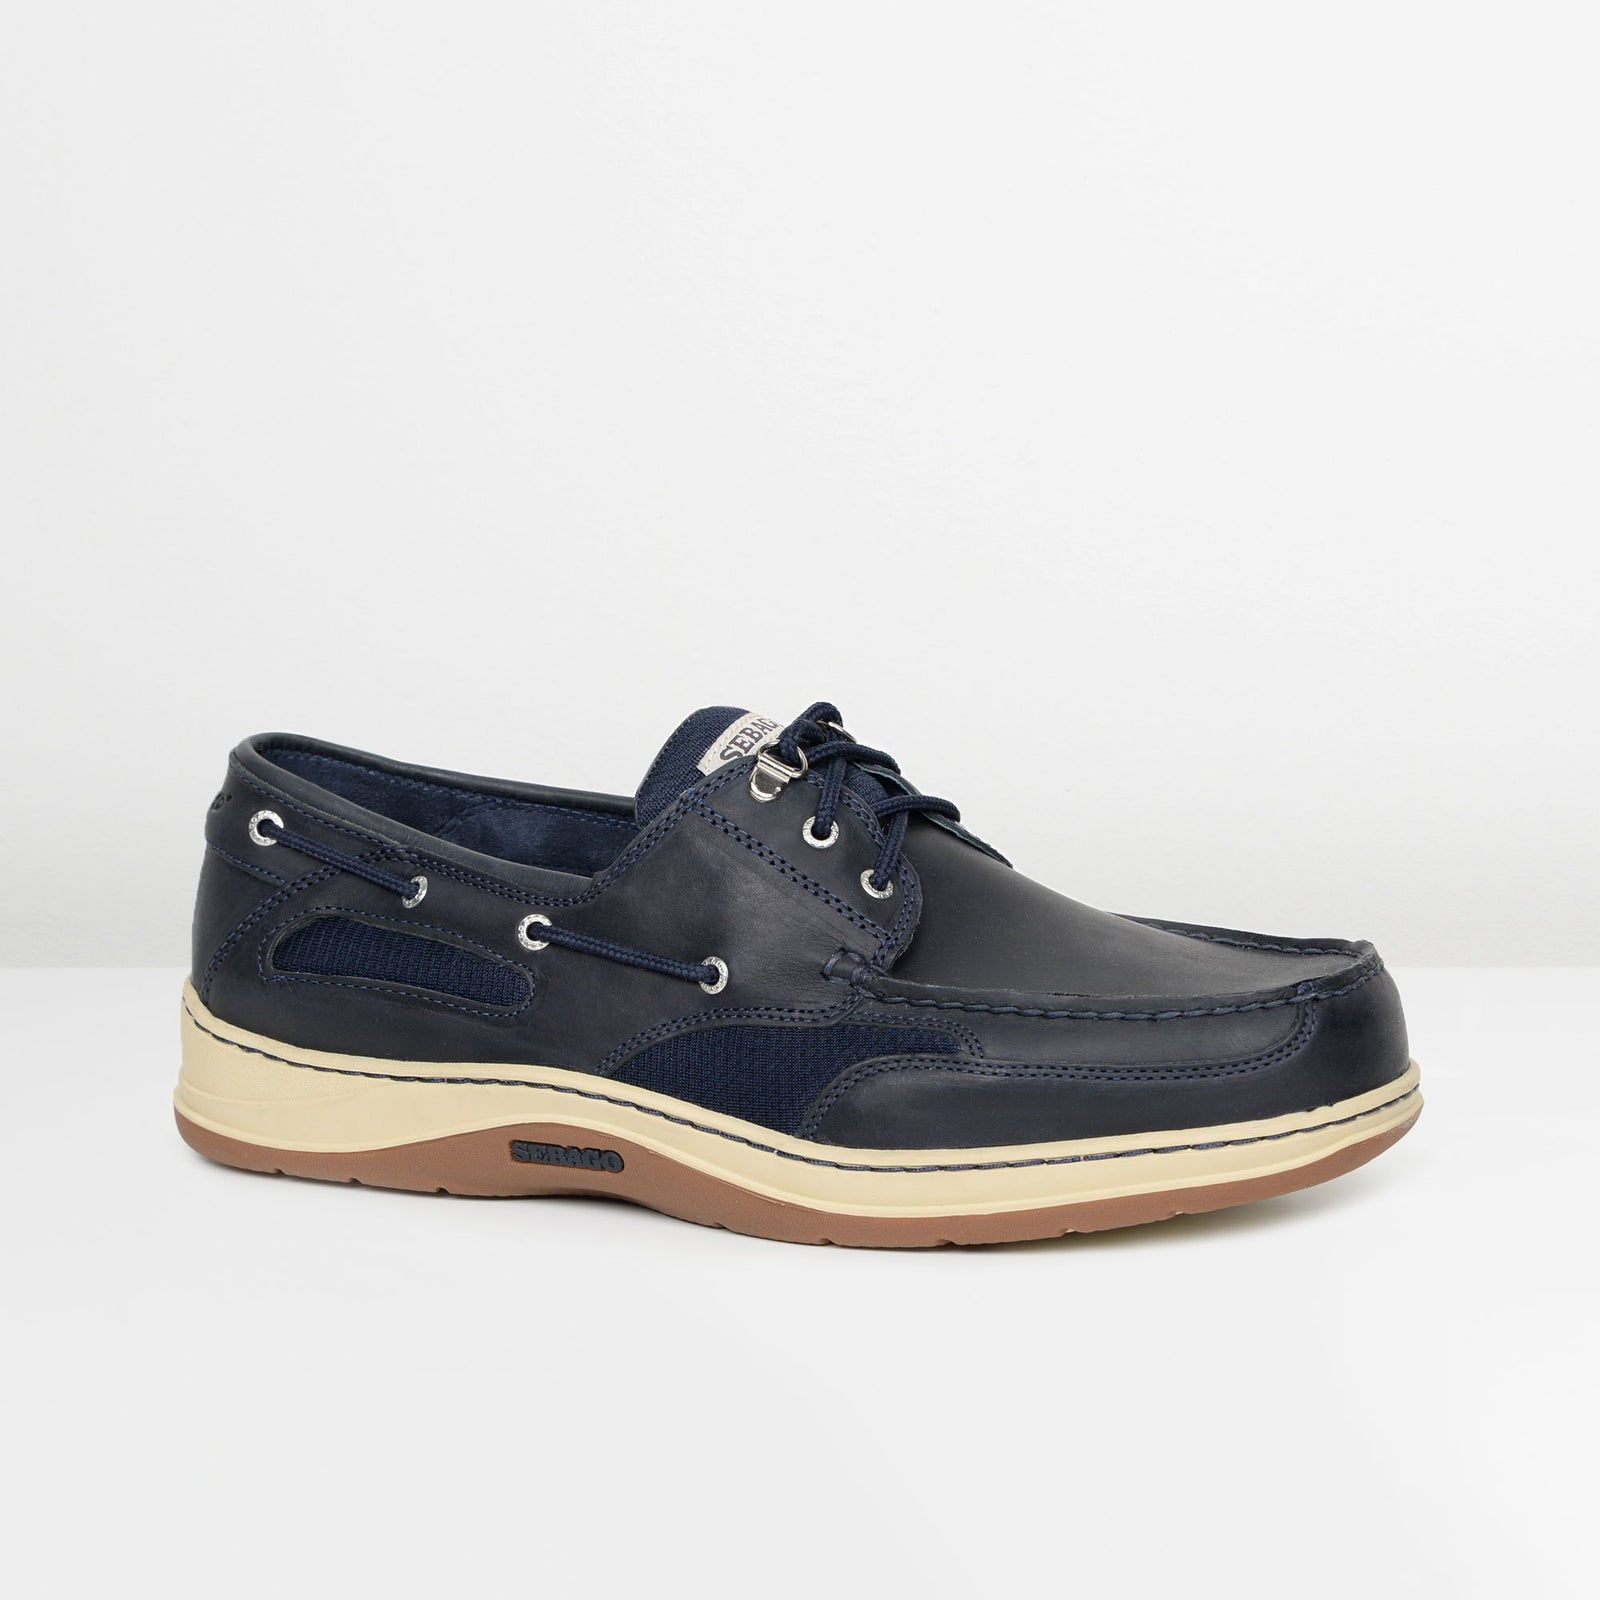 Blue Navy Clovehitch Boat Shoes